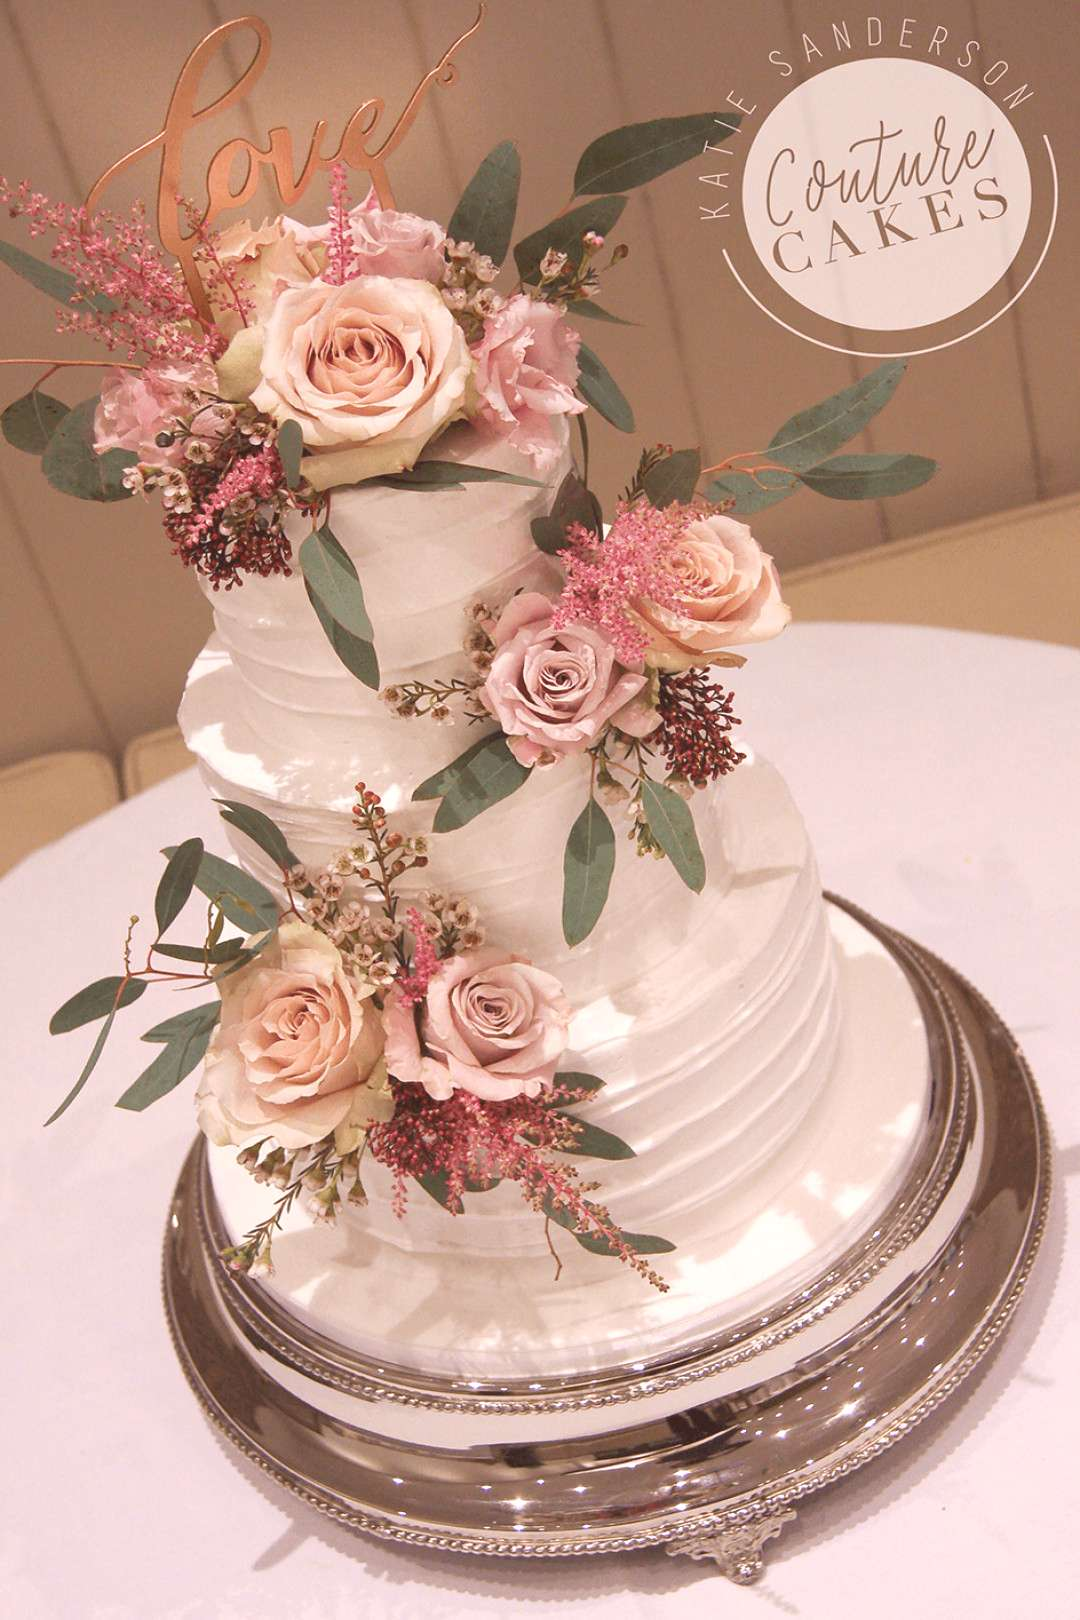 Tiered Wedding Cakes for Stamford Lincolnshire#cakes